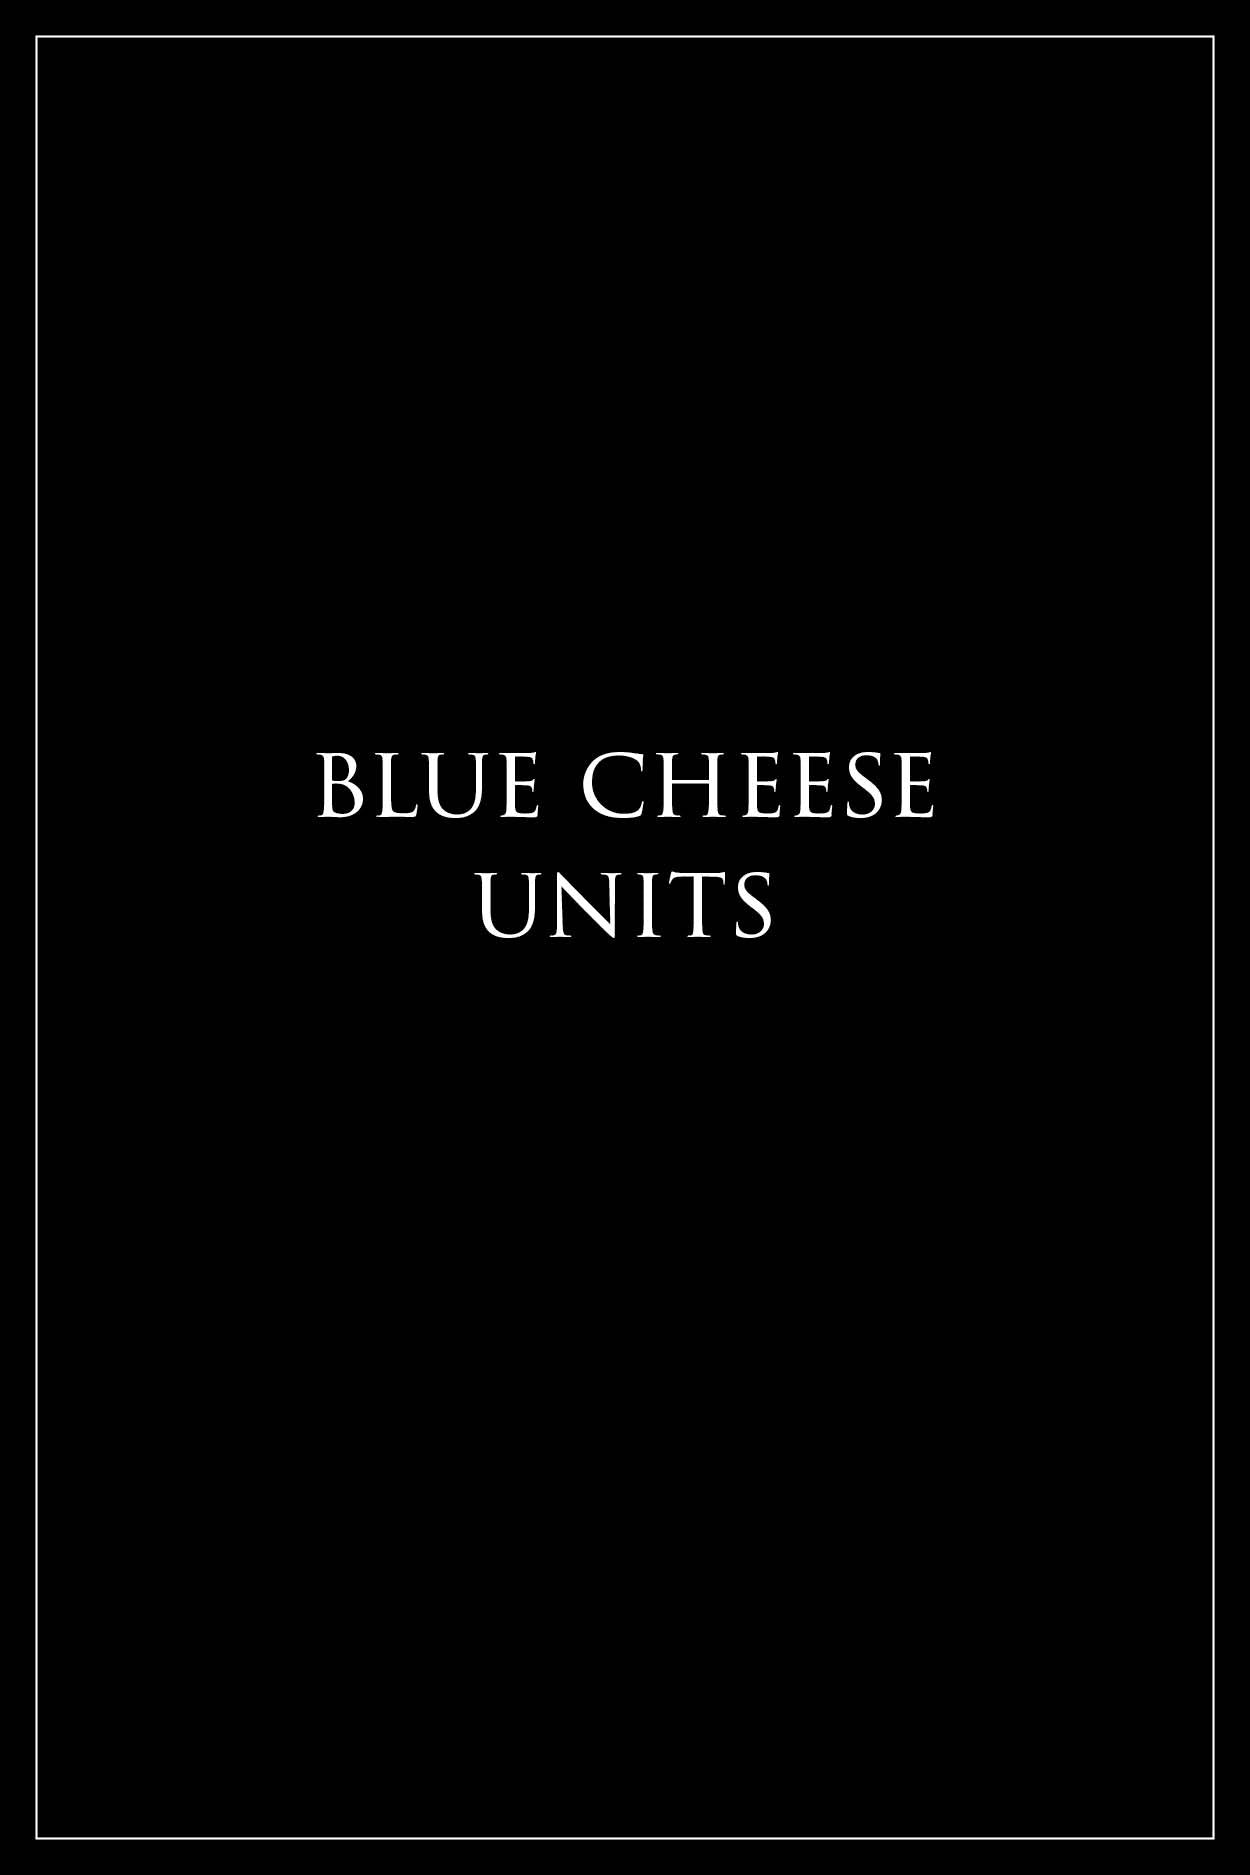 Blue Cheese Units - Milk the Cow Licensed Fromagerie